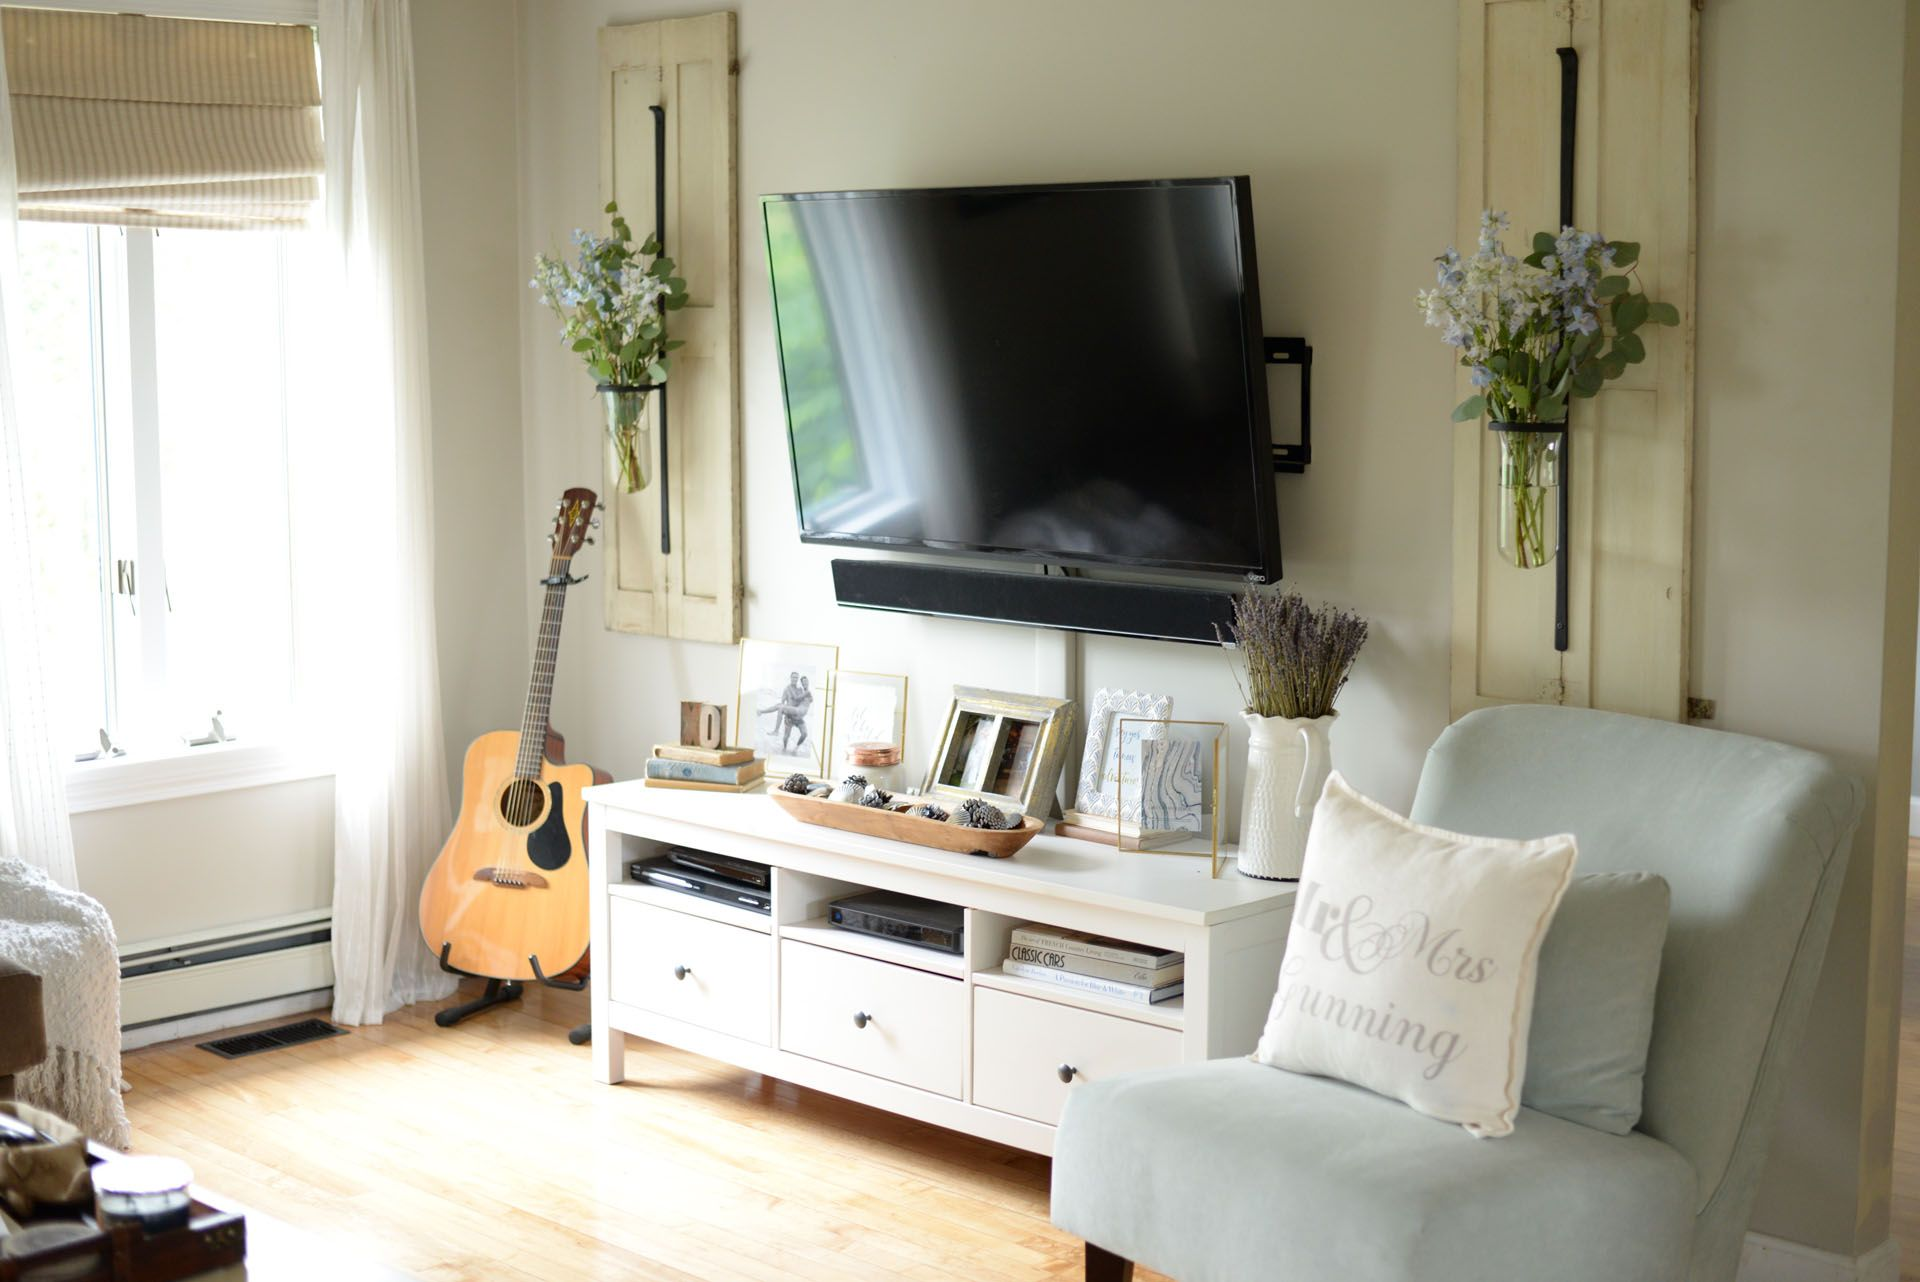 How To Decorate A Corner Wall Behind Tv - Wall Decor Ideas